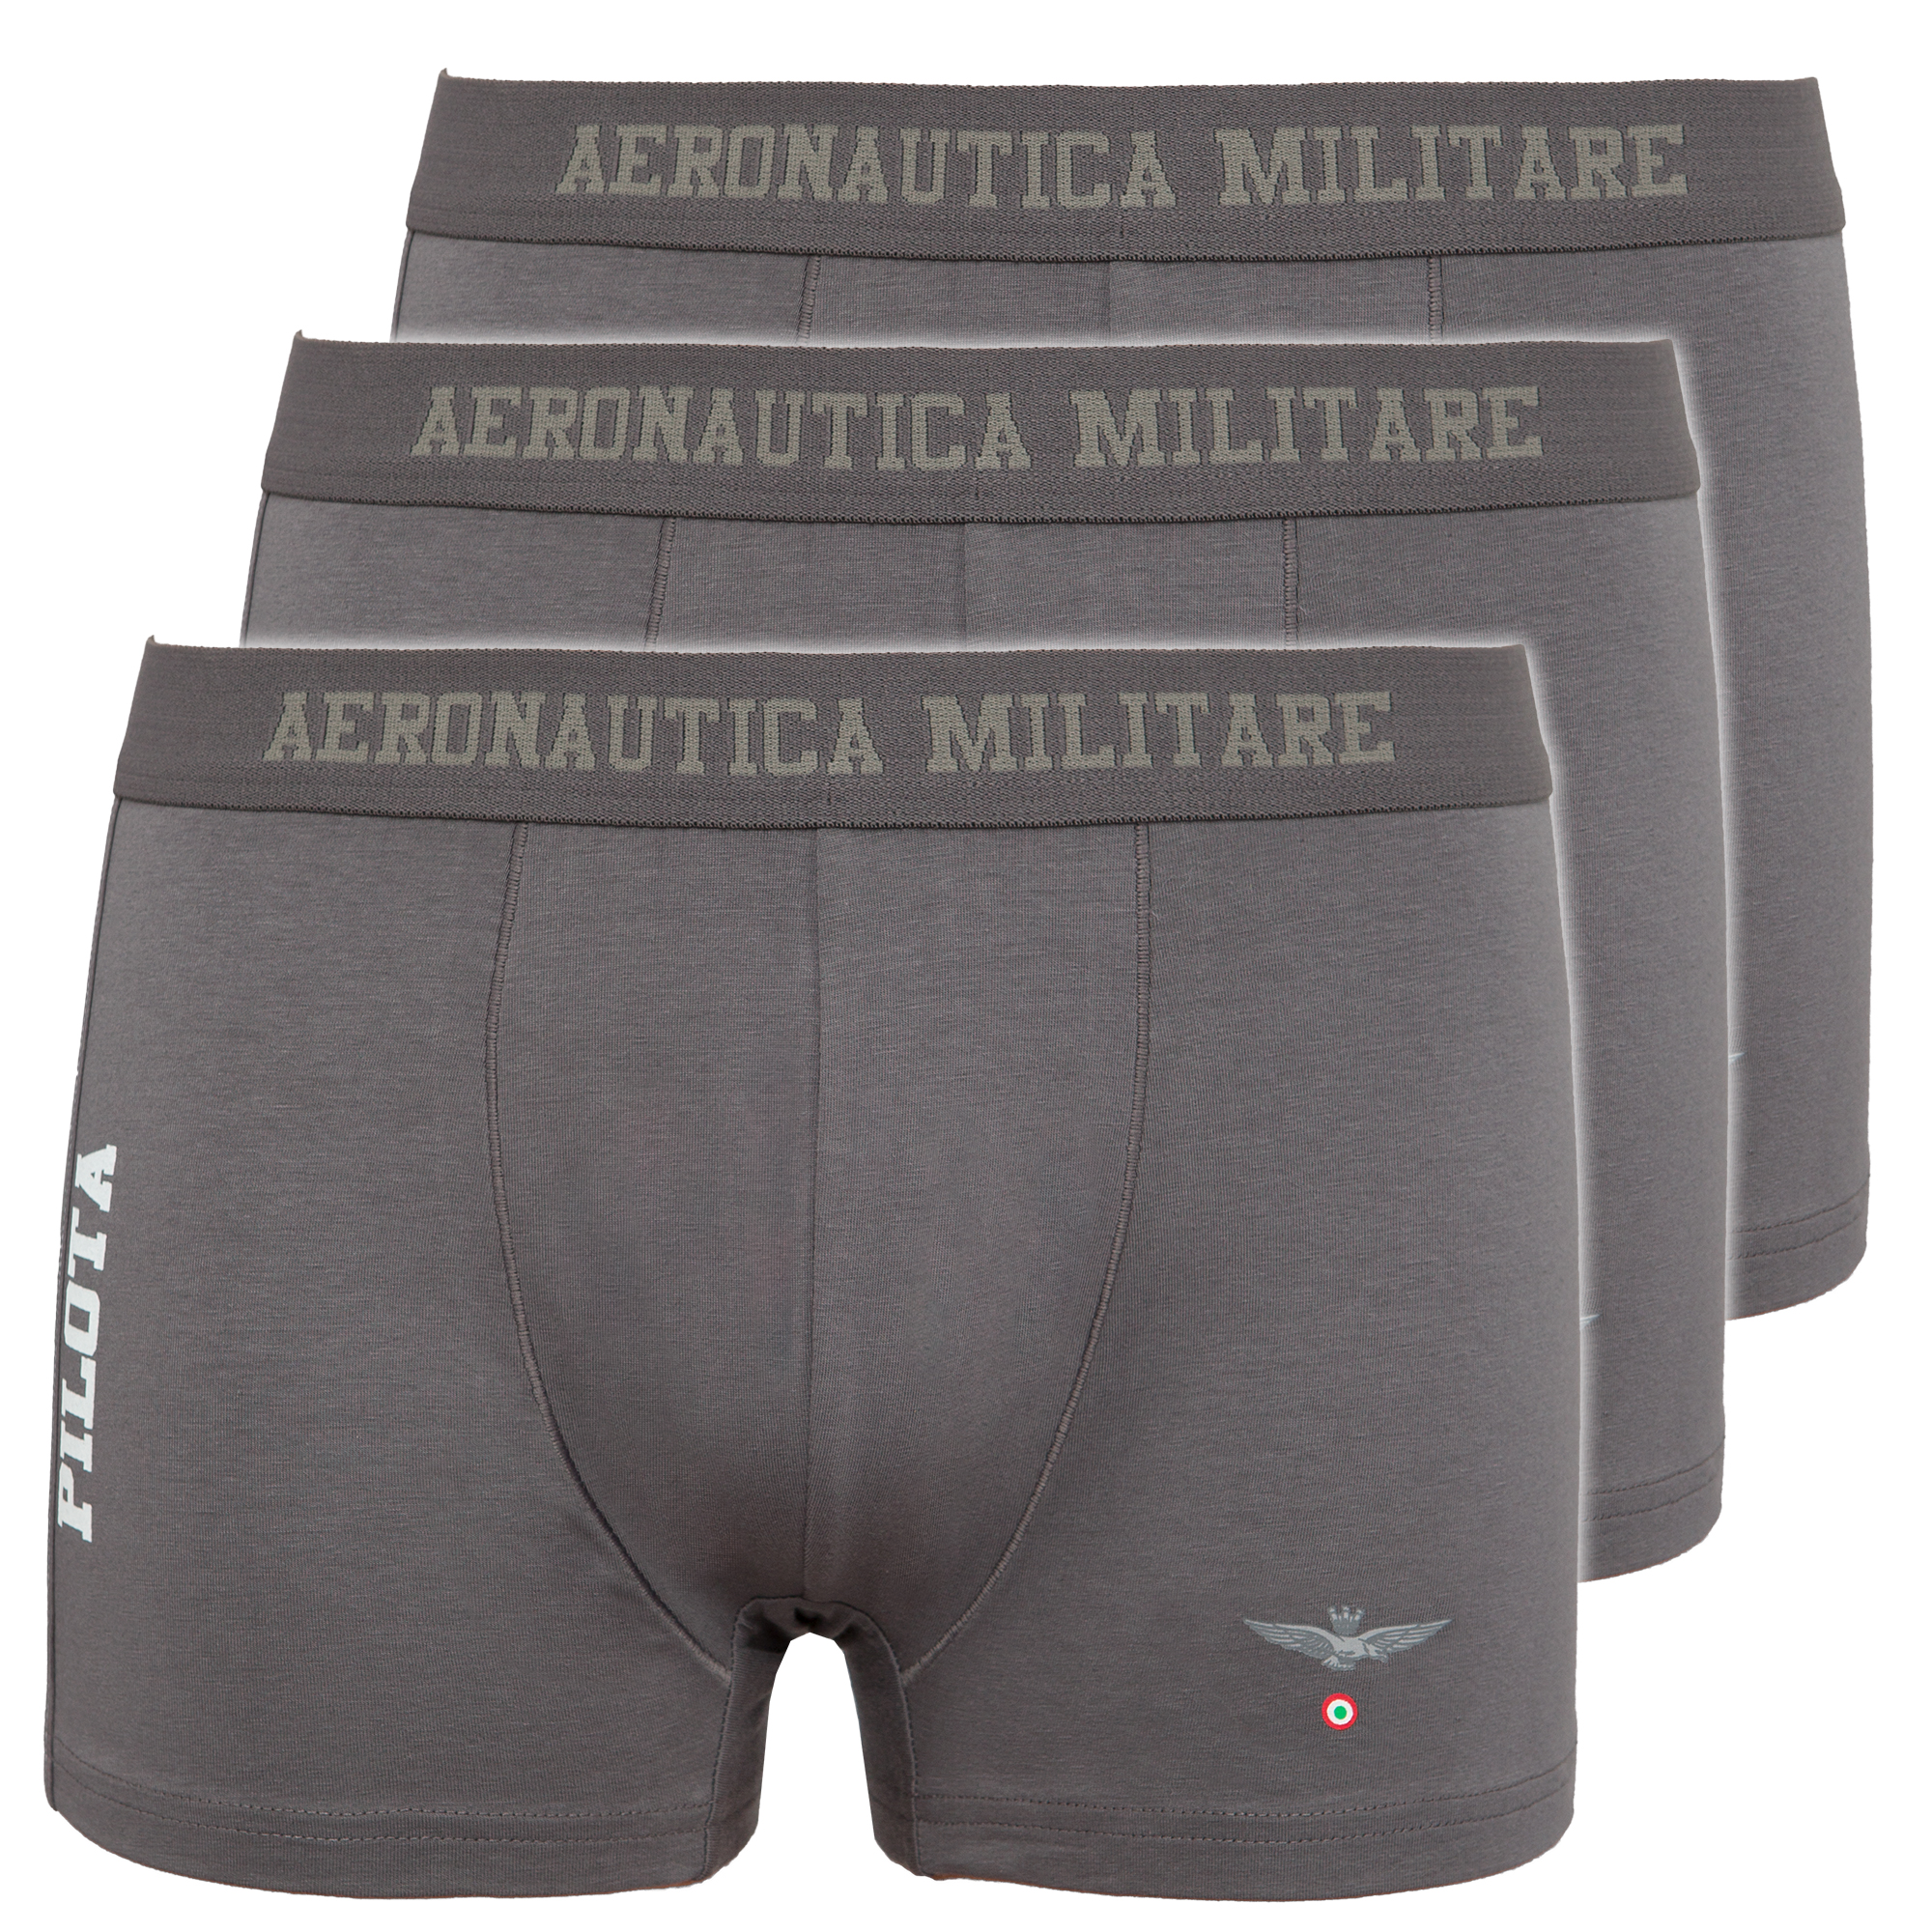 Sale Cheap Prices Clearance Get Authentic Man Underwear Aeronautica Militare - M Aeronautica Wholesale Quality PbdW2Pp